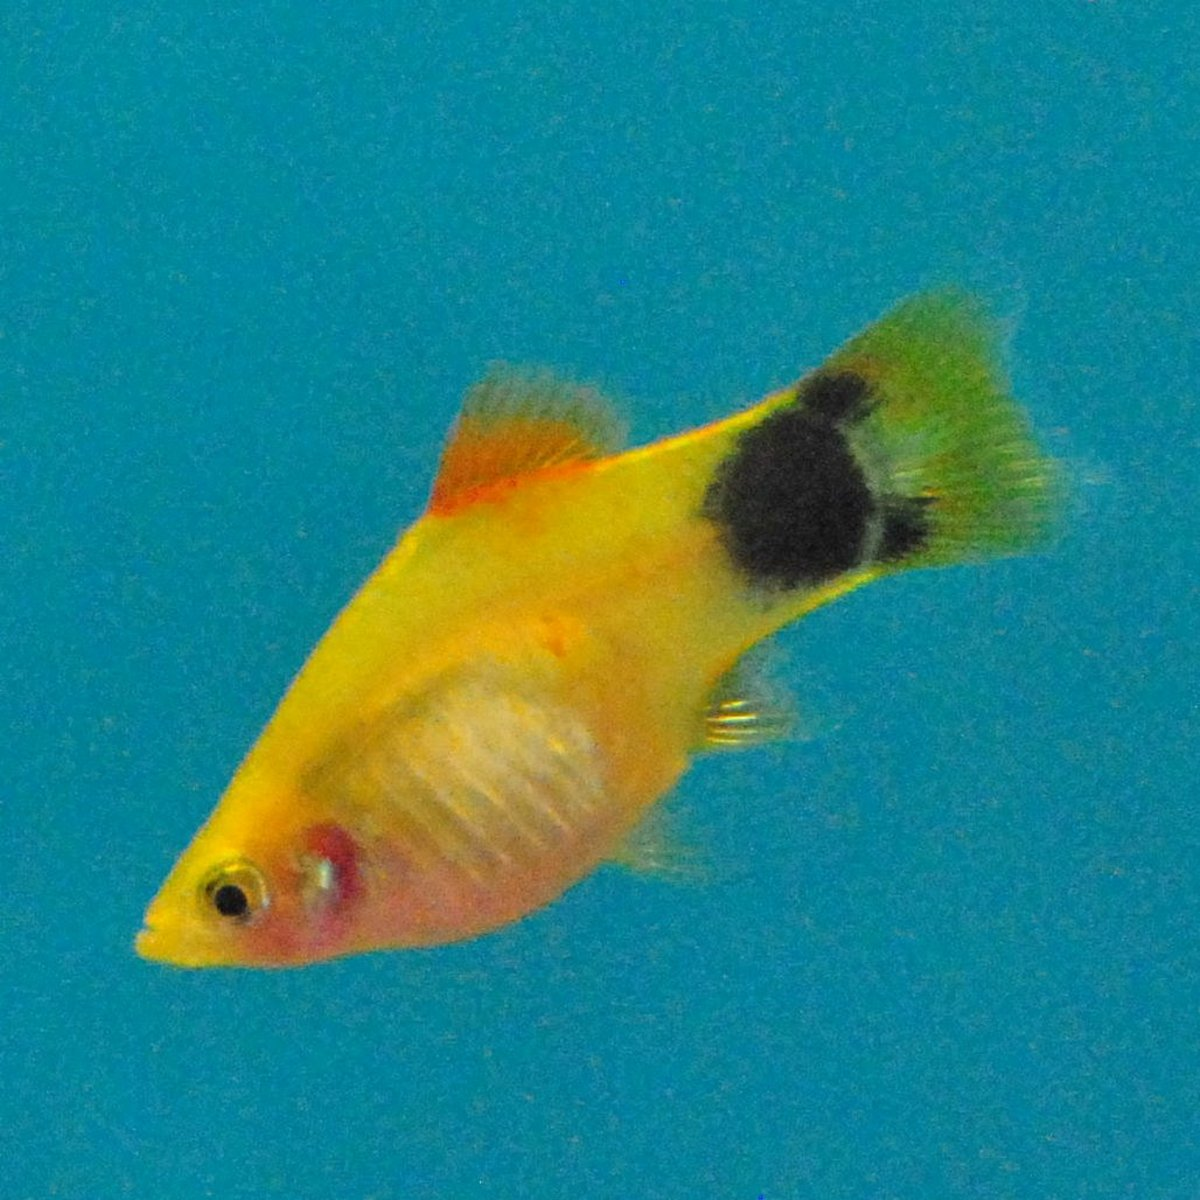 Platy (xiphophorus) does well in fish tanks that are 10 gallons or larger